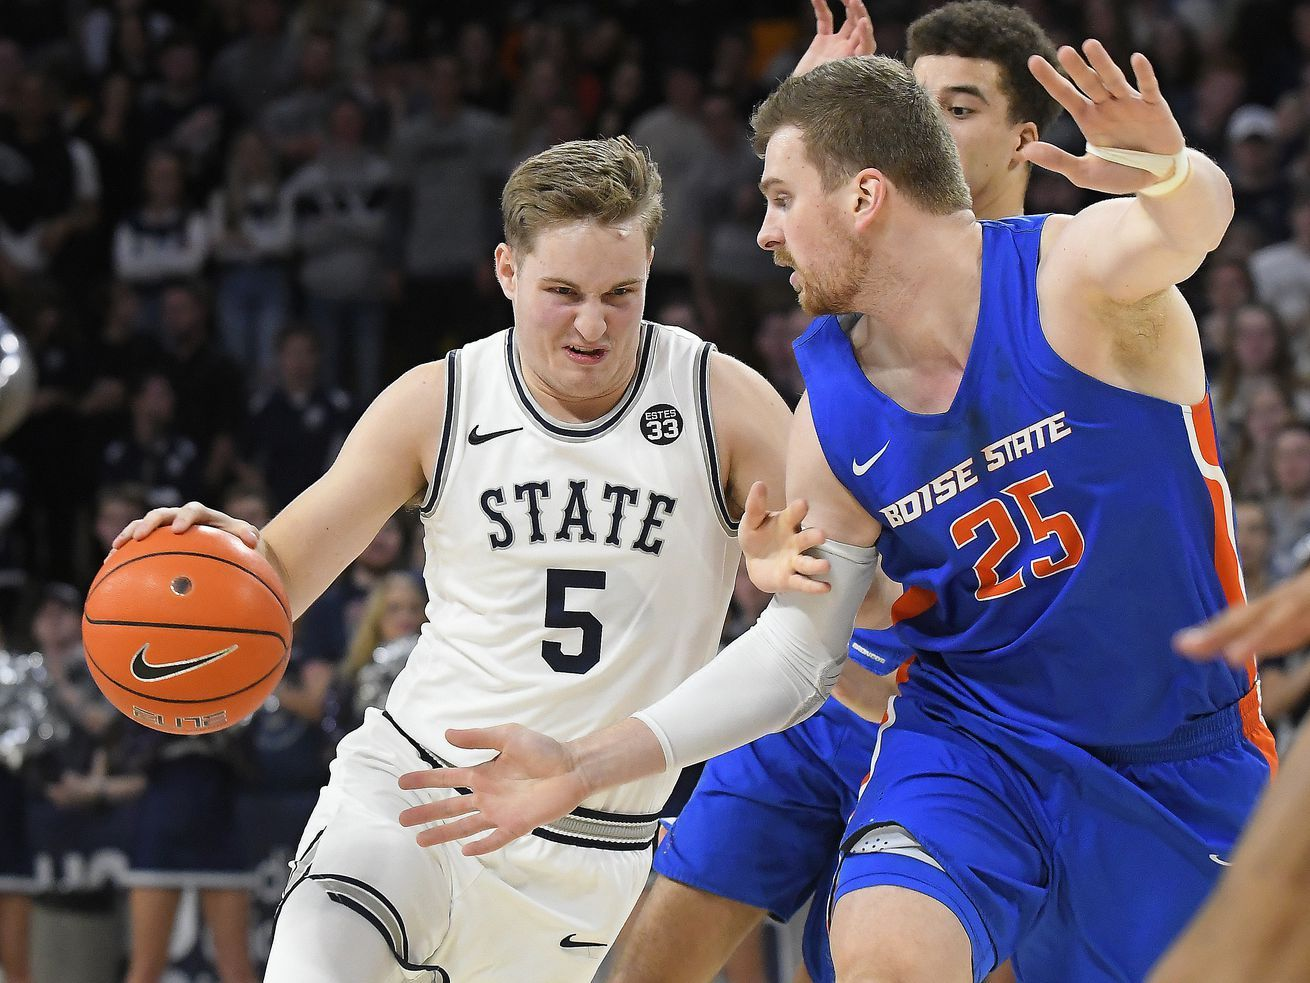 Utah State's ability to close game out this time against